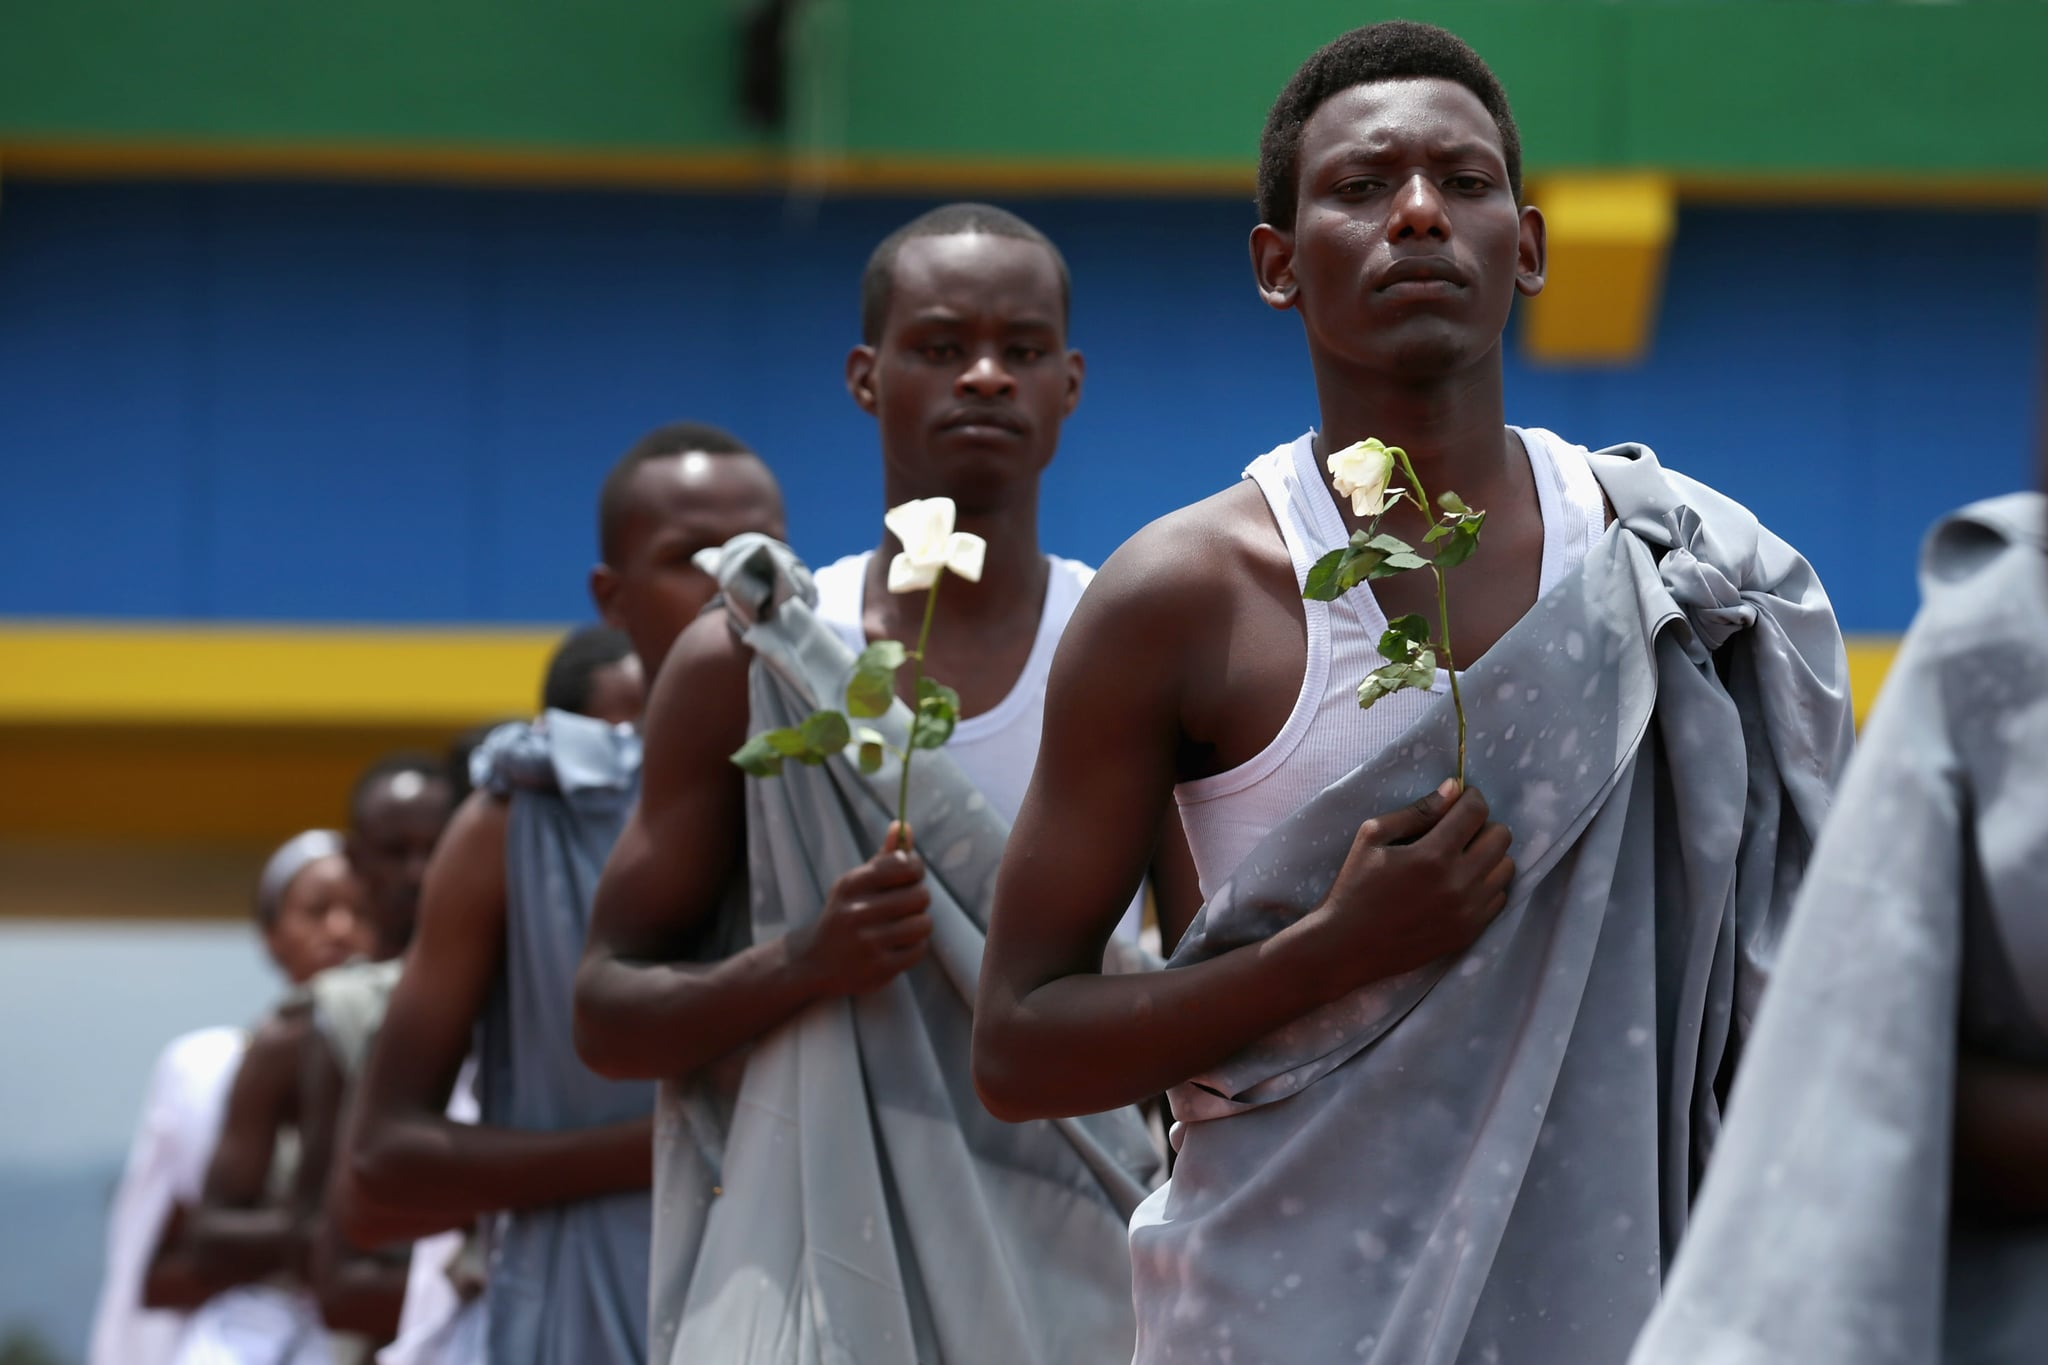 Performers carried white flowers as they entered Amahoro Stadium, where tens of thousands of Rwandans gathered to remember the 100-day massacre.